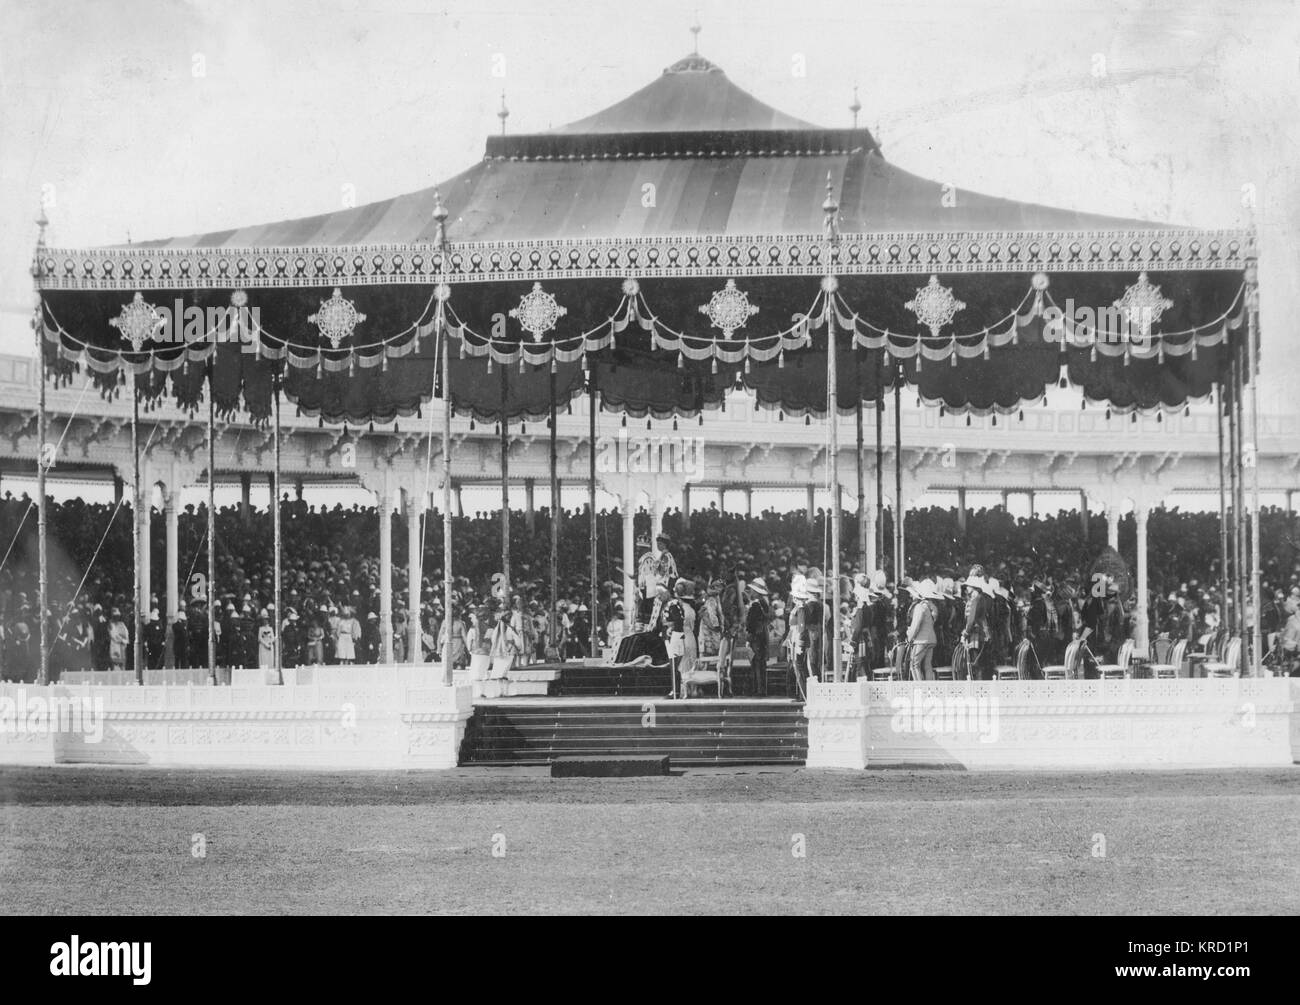 King George V reading the proclamation to a large crowd at his Coronation Durbar ceremony in Delhi, India.      - Stock Image